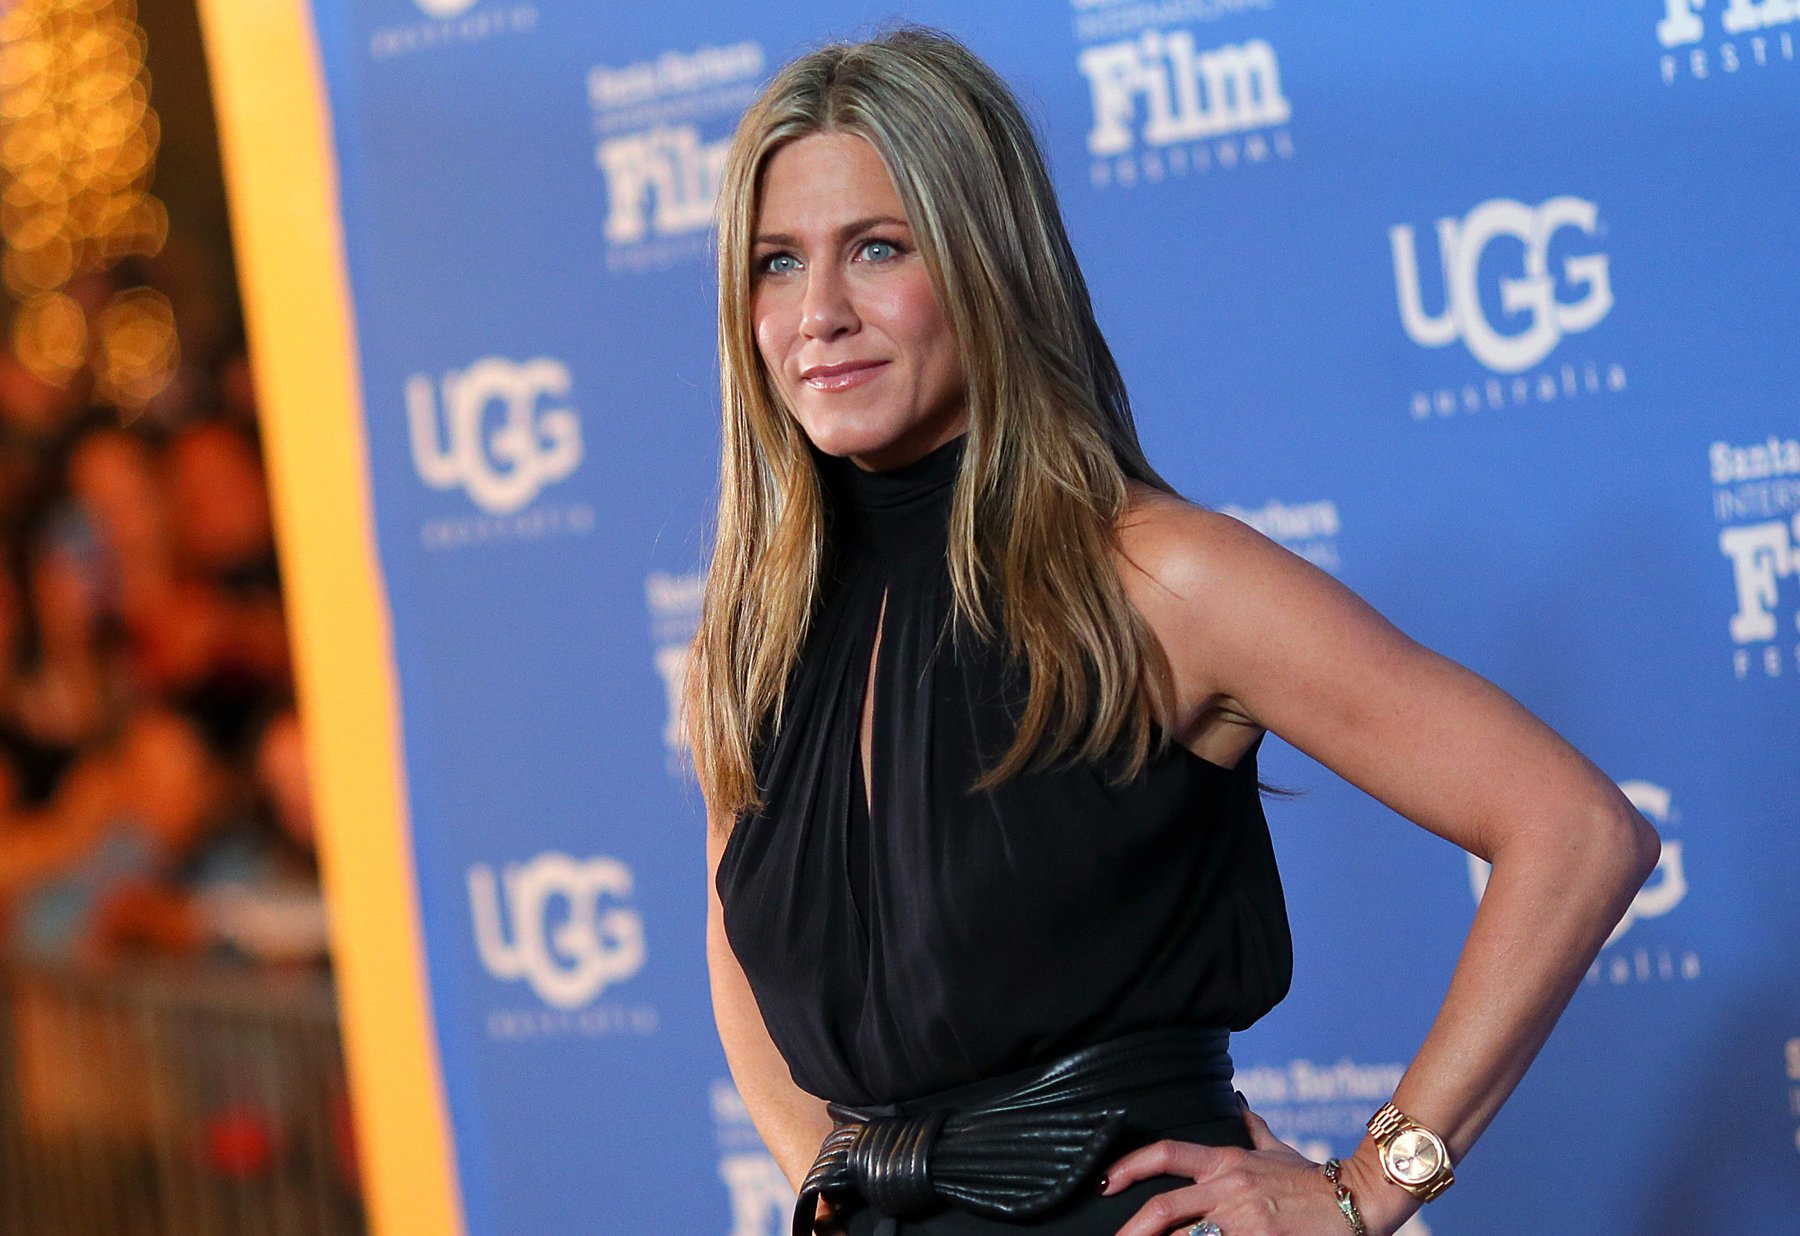 Jennifer aniston lubed up